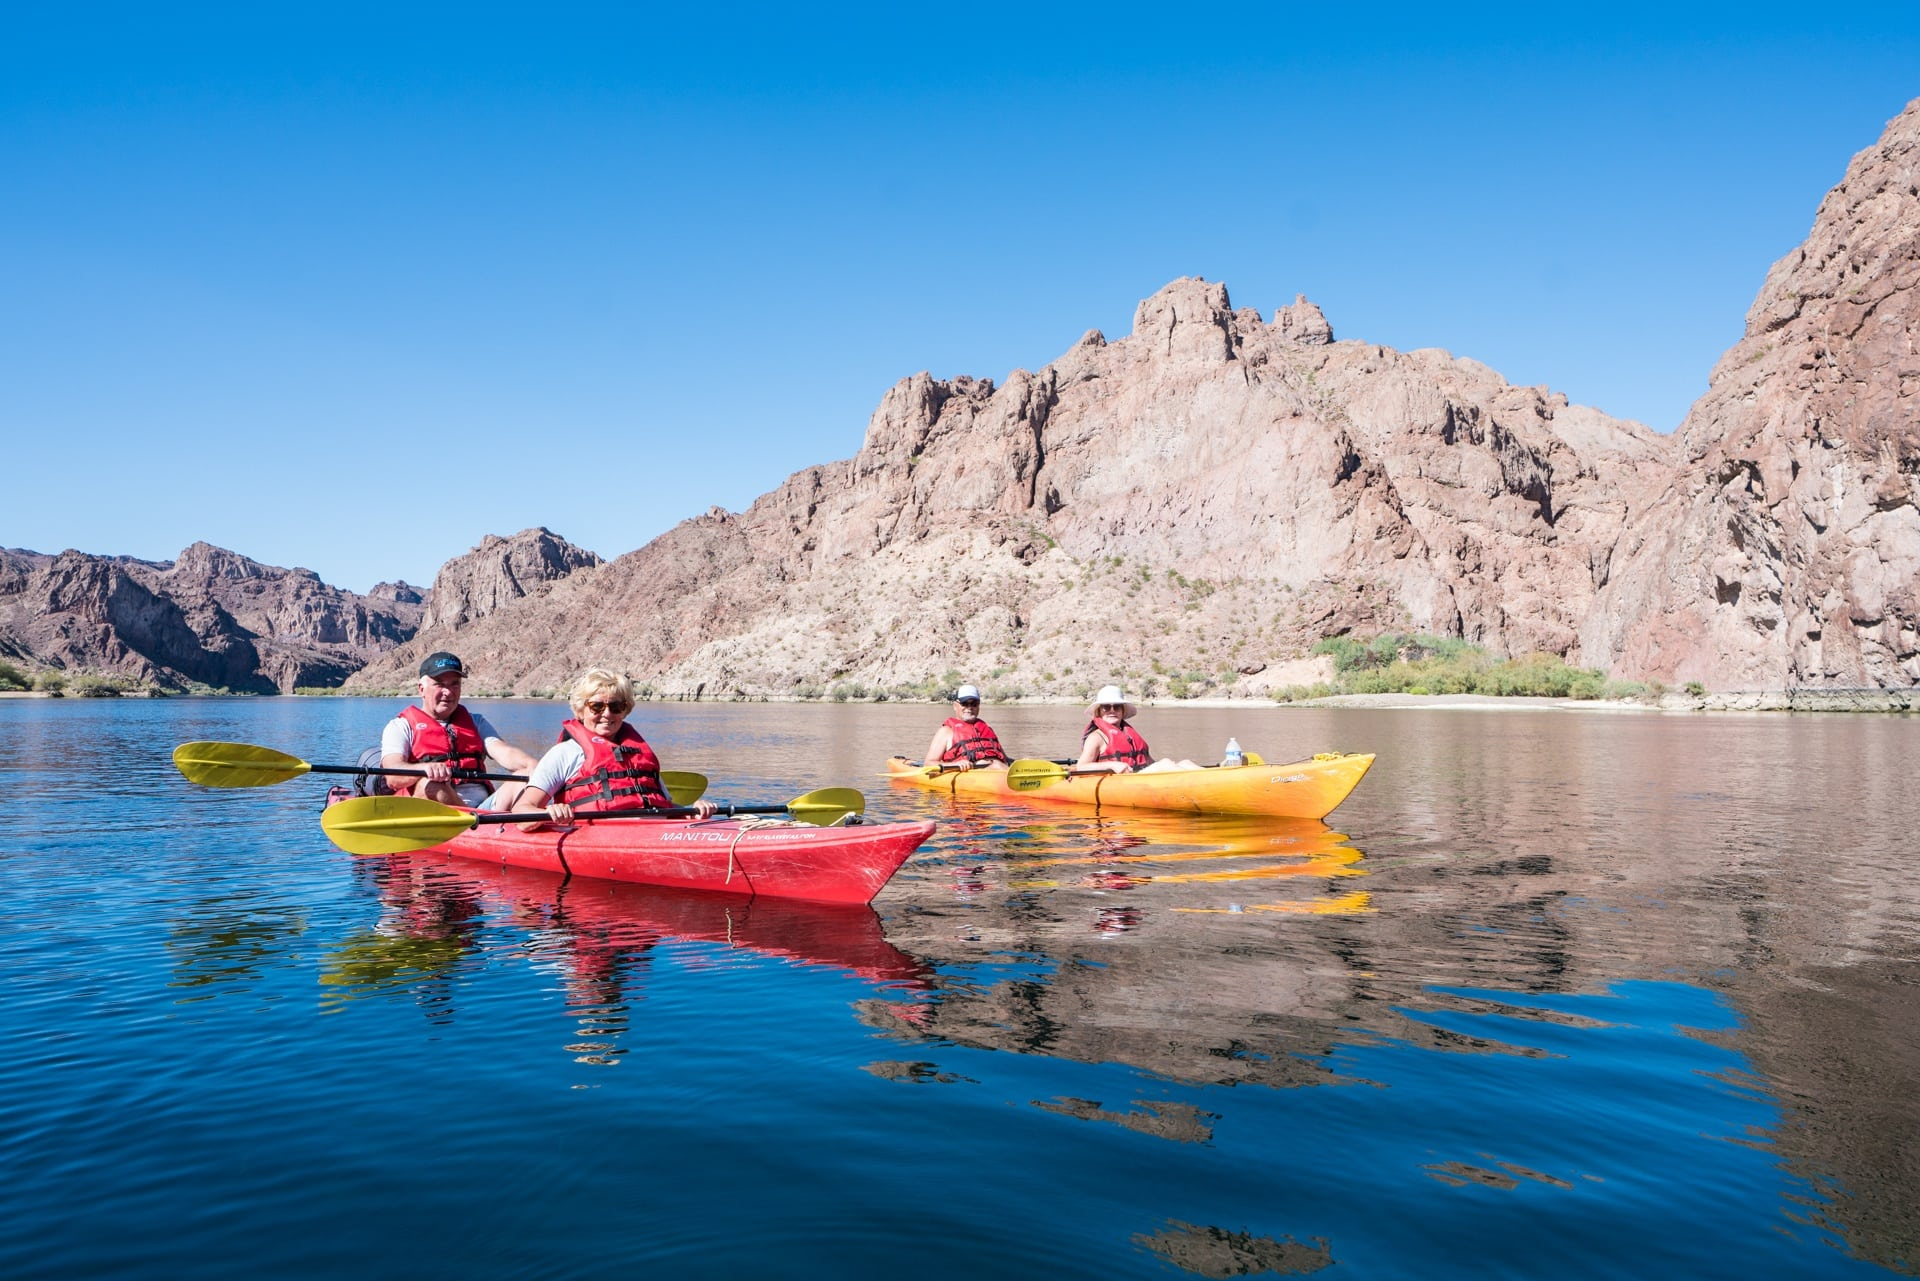 Single vs double kayaks // Build confidence with these kayaking tips for beginners. Learn about different types of kayaks, what to wear, how to paddle & trip planning considerations.